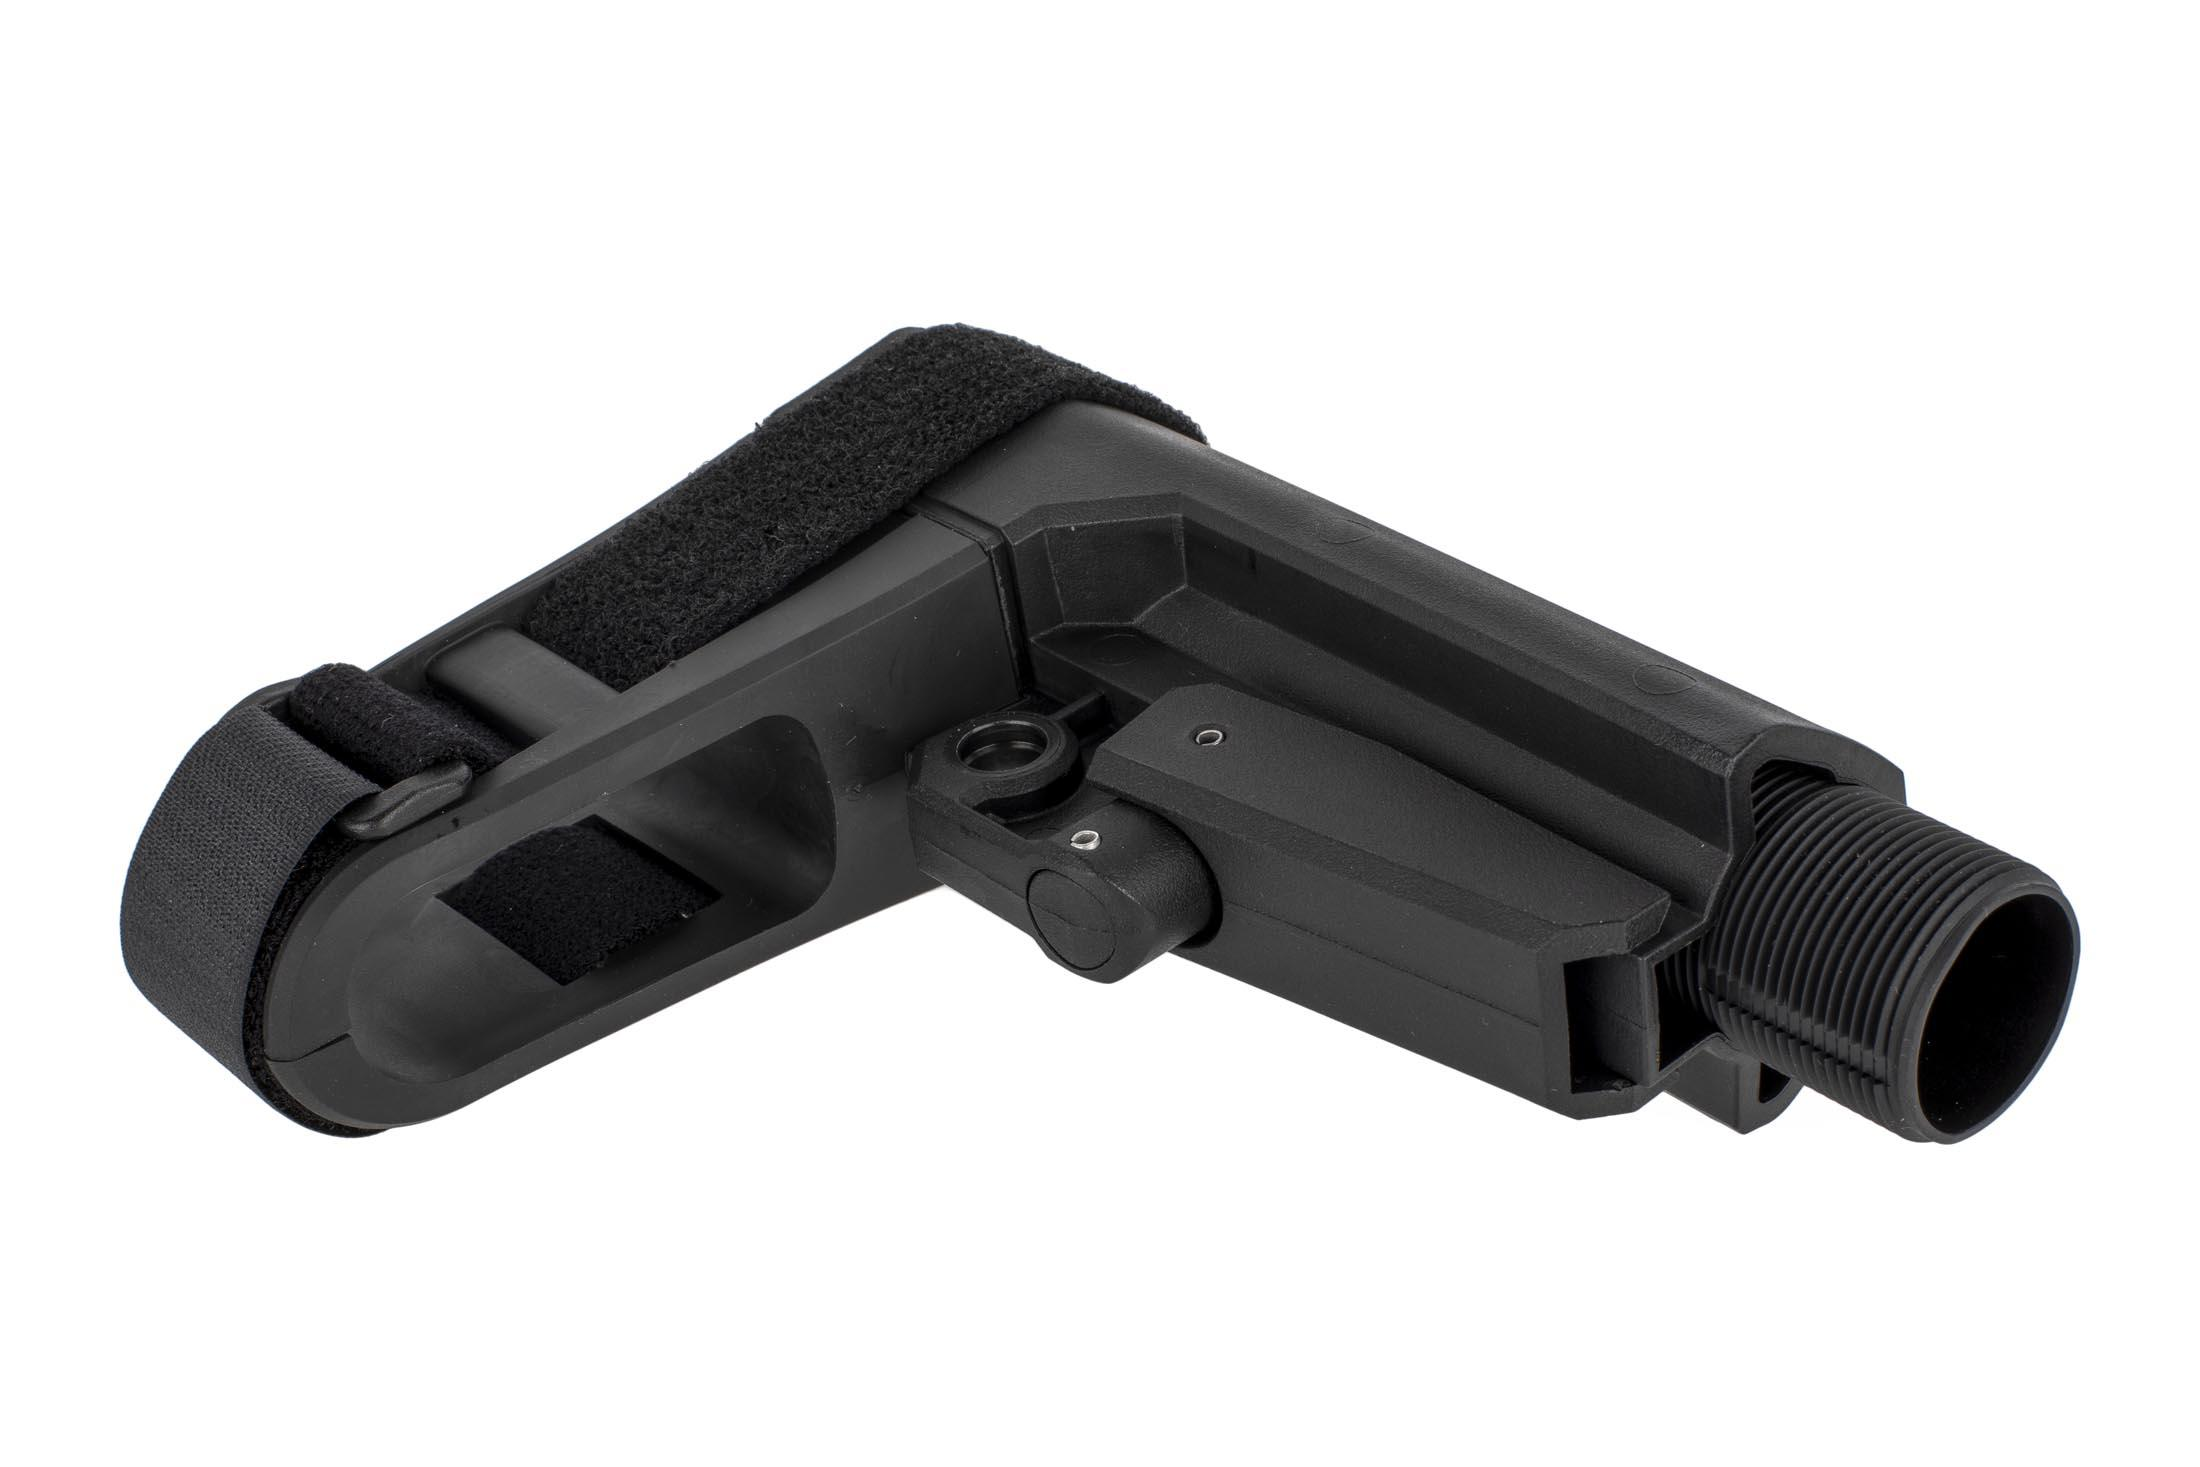 The CMMG RipBrace stock kit comes with an aluminum buffer tube